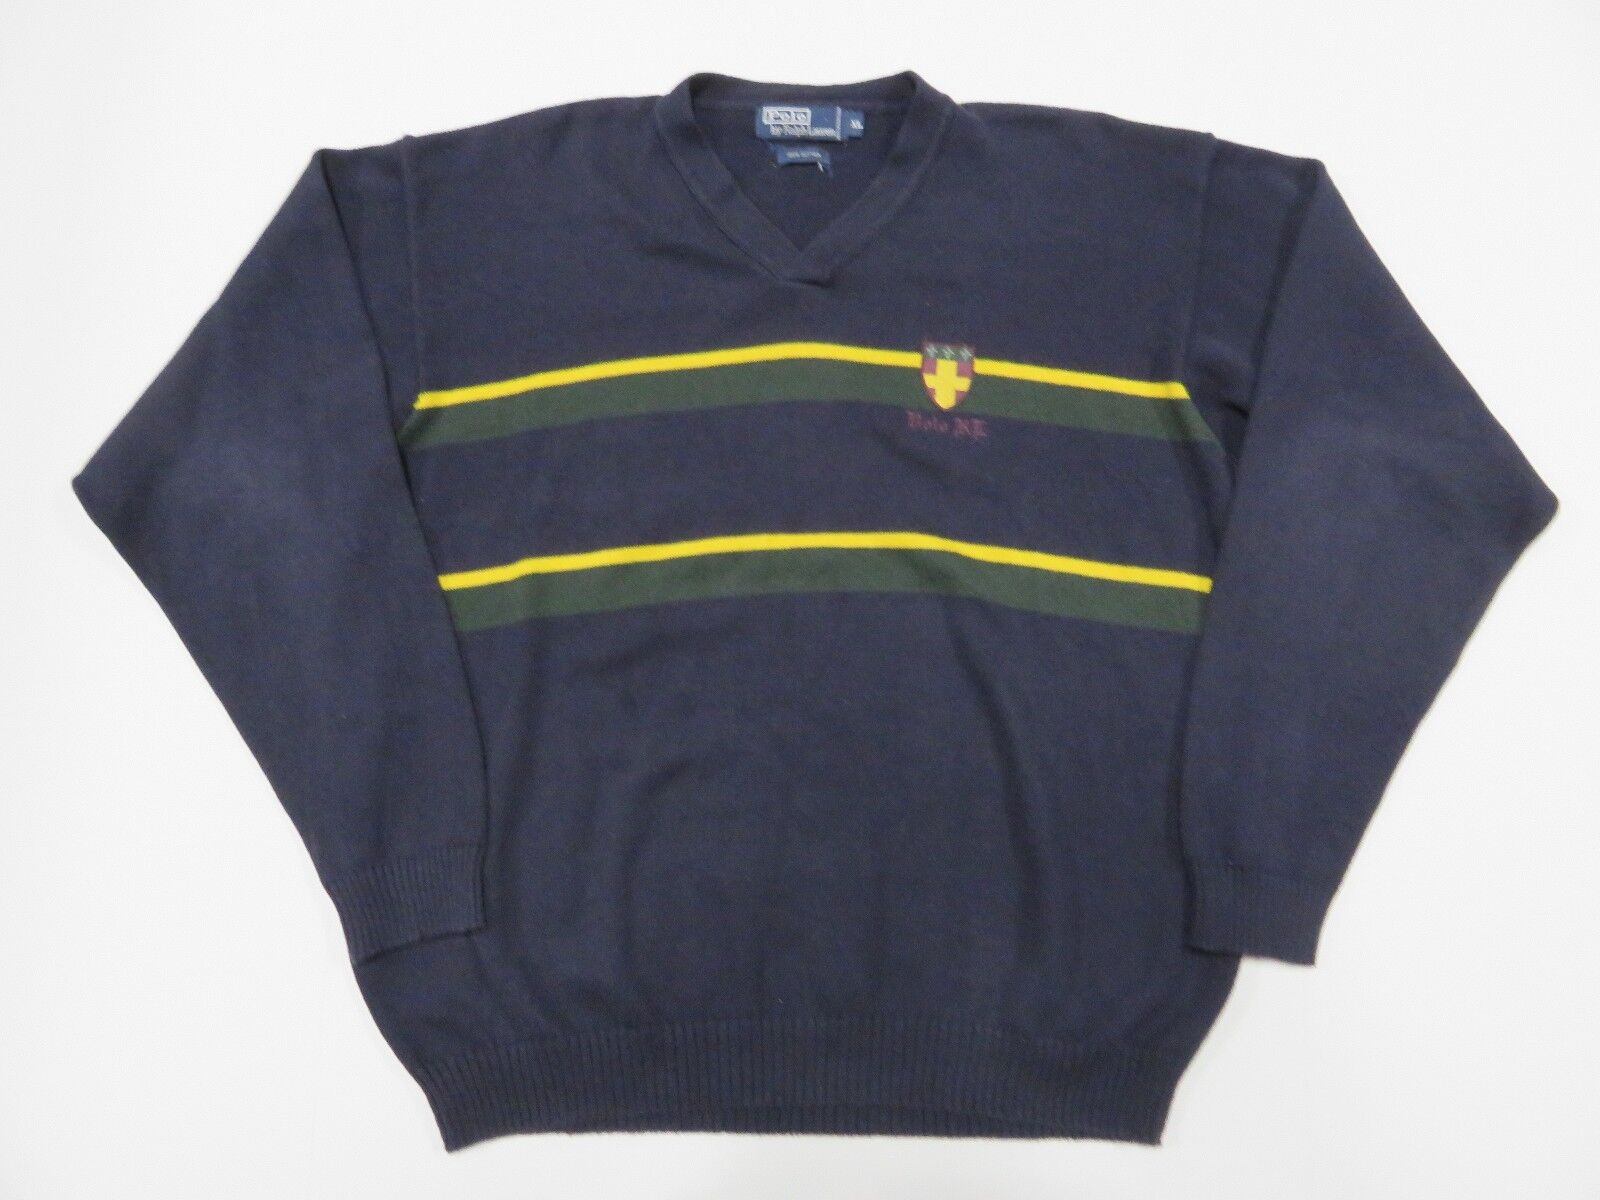 Polo by Ralph Lauren Blau Sweater With Stripes Adult Größe X-Large 100% Cotton